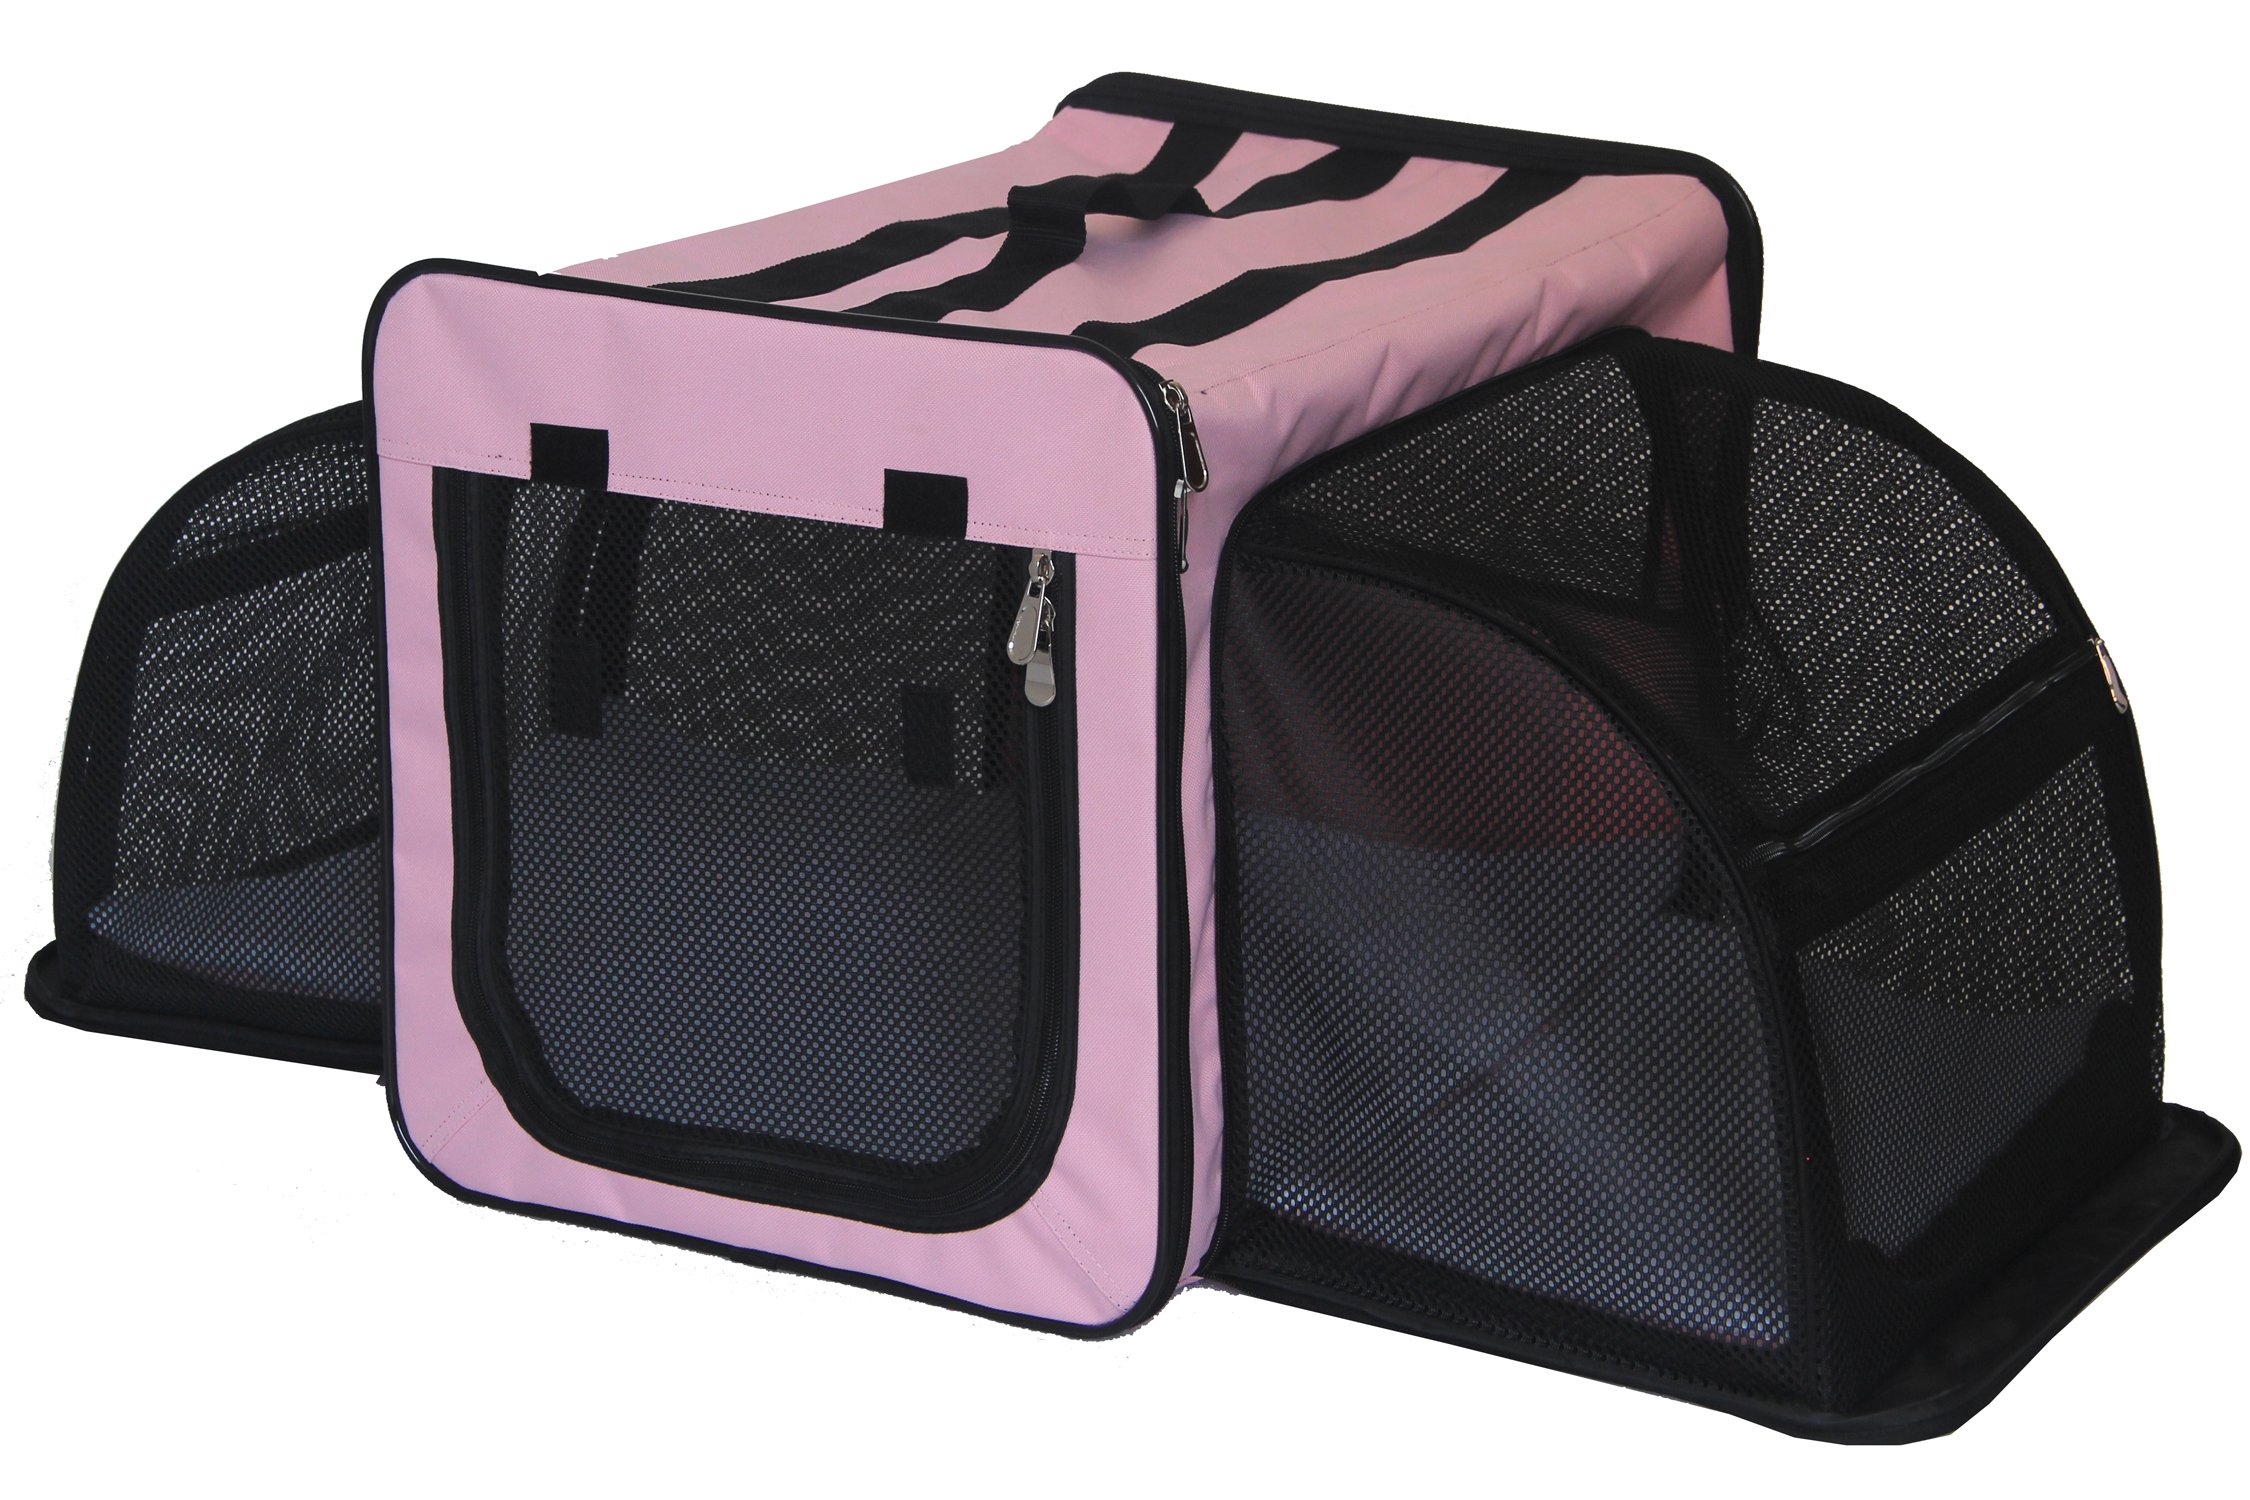 Pet Life Capacious' Dual-Sided Expandable Spacious Wire Folding Collapsible Lightweight Pet Dog Crate Carrier House, Large, Pink by Pet Life (Image #1)